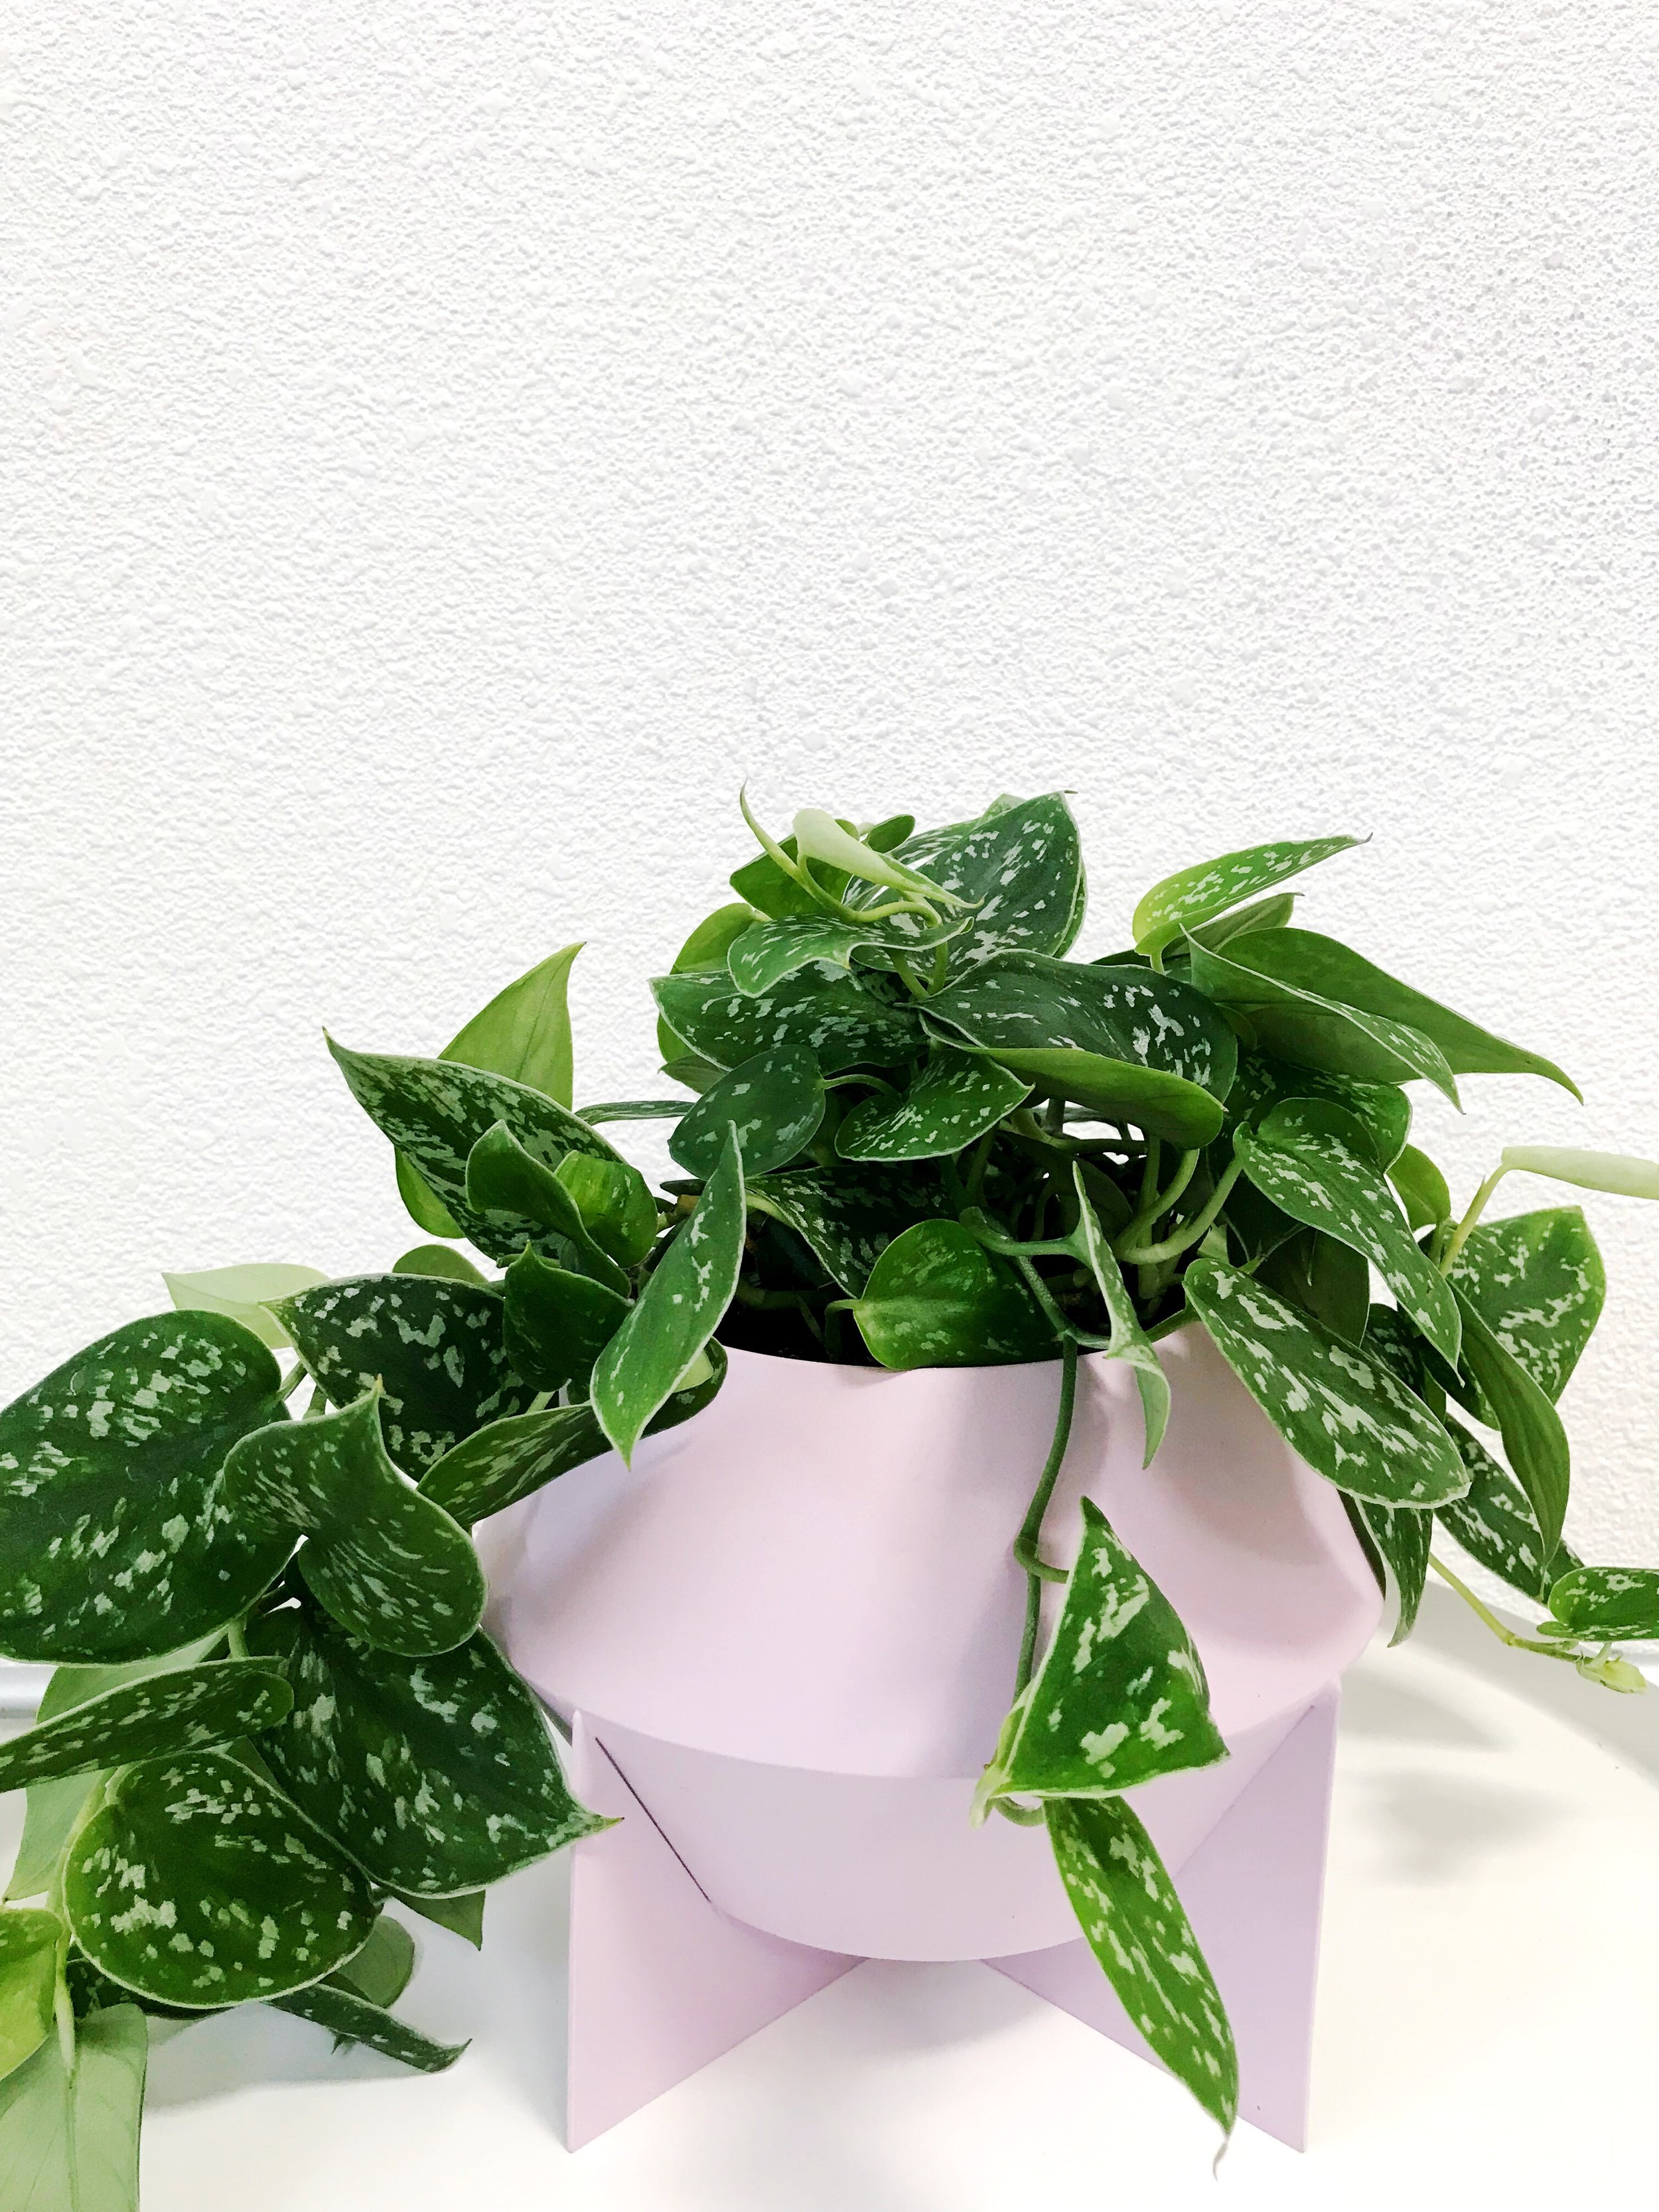 papercraftpantry-blog-roundup-best-unusual-house-plants.jpg